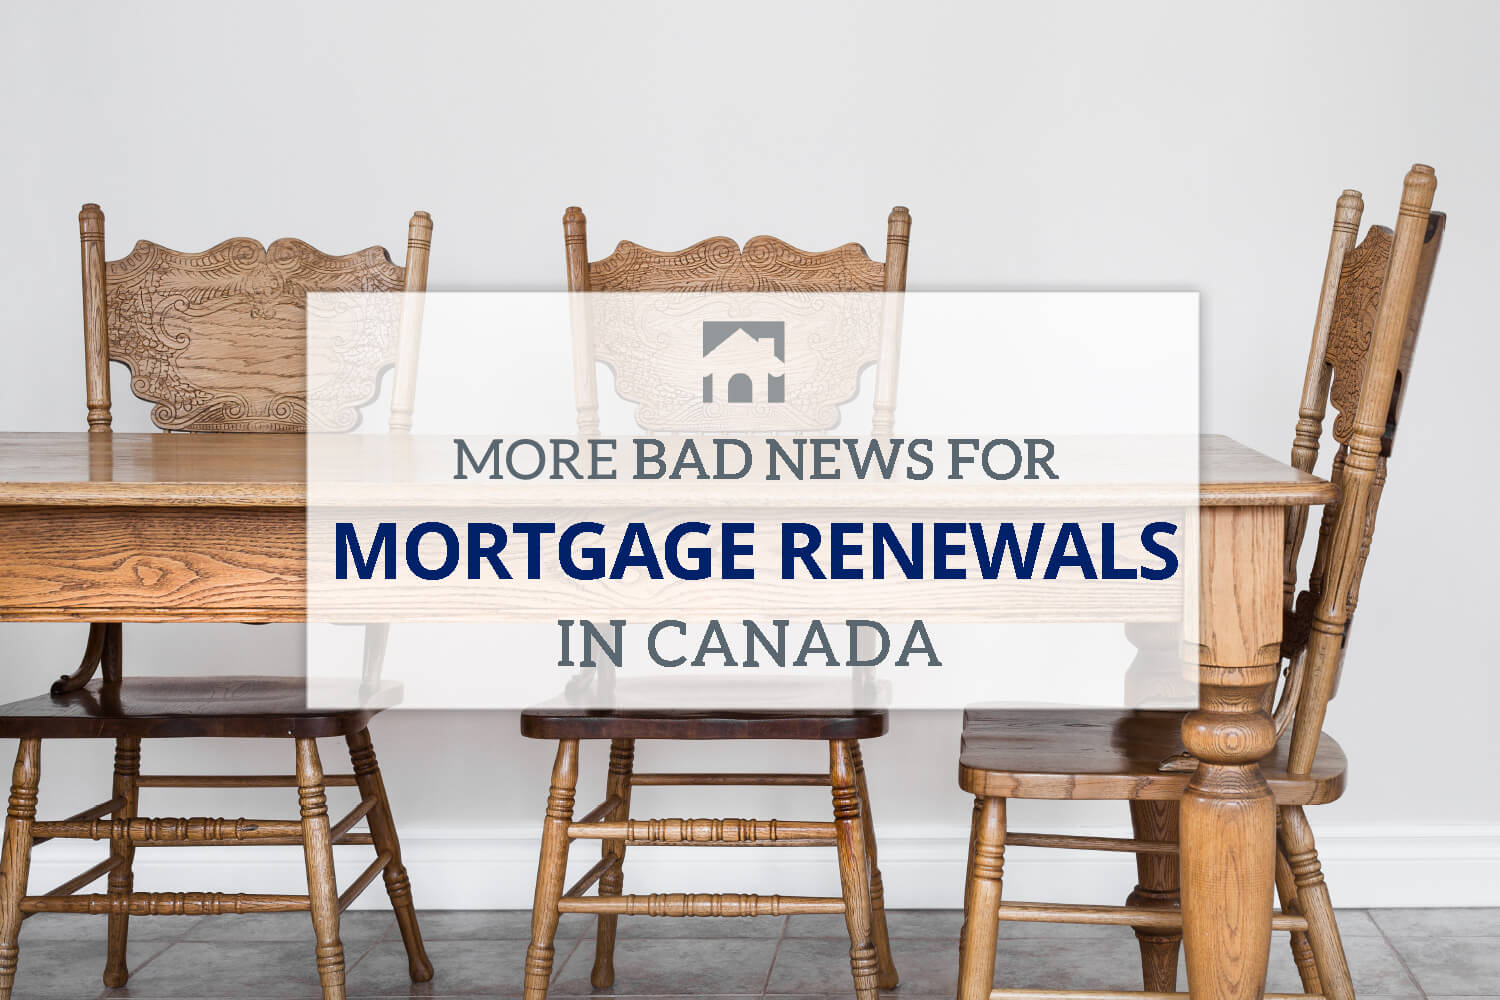 Mortgage Renewal - image of wood table and chairs with text that reads More Bad News for Mortgage Renewals in Canada